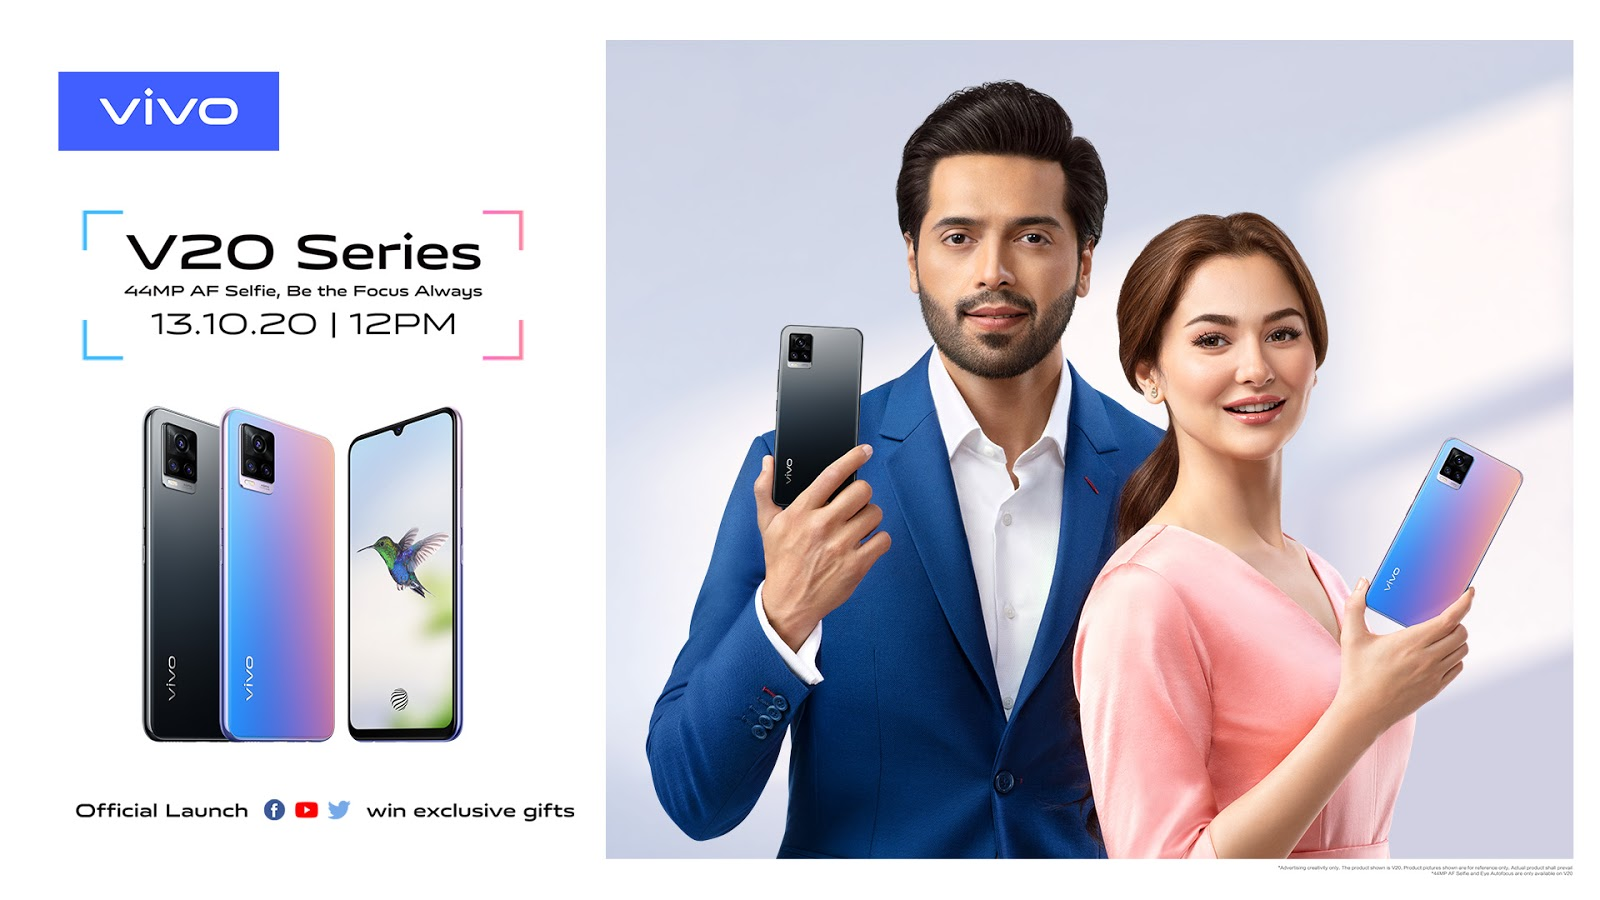 vivo to Launch the Flagship V20 Smartphone with 44MP Eye Autofocus in Pakistan on October 13